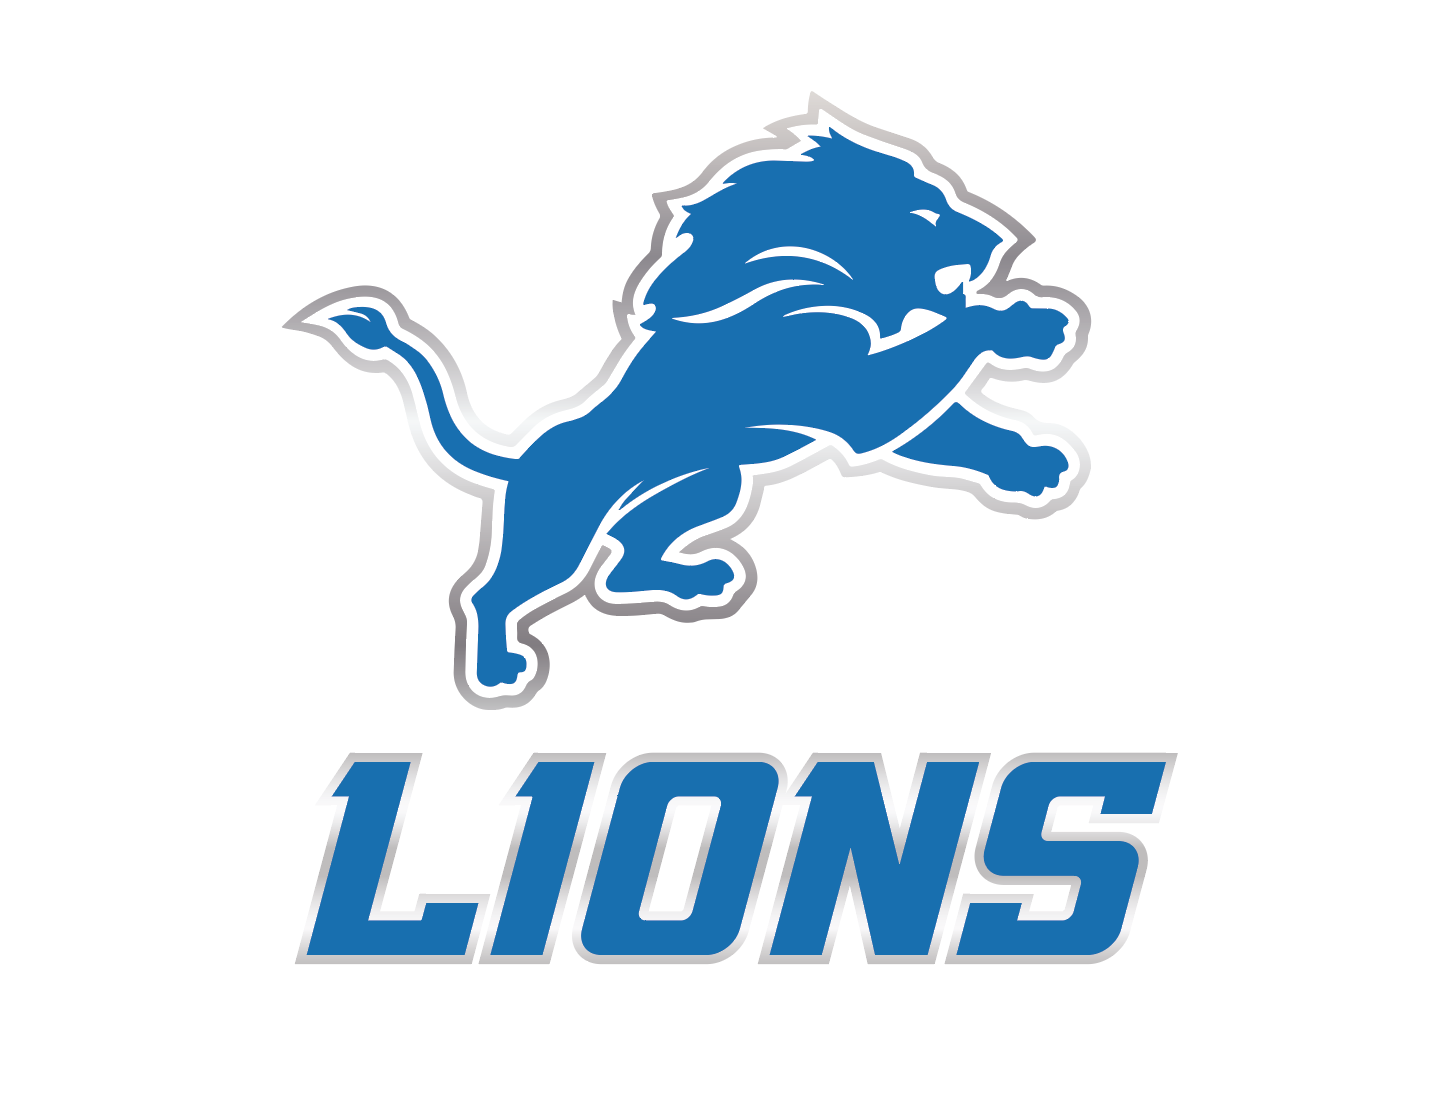 lions new logo and uniforms 2017 page 5 sports logos